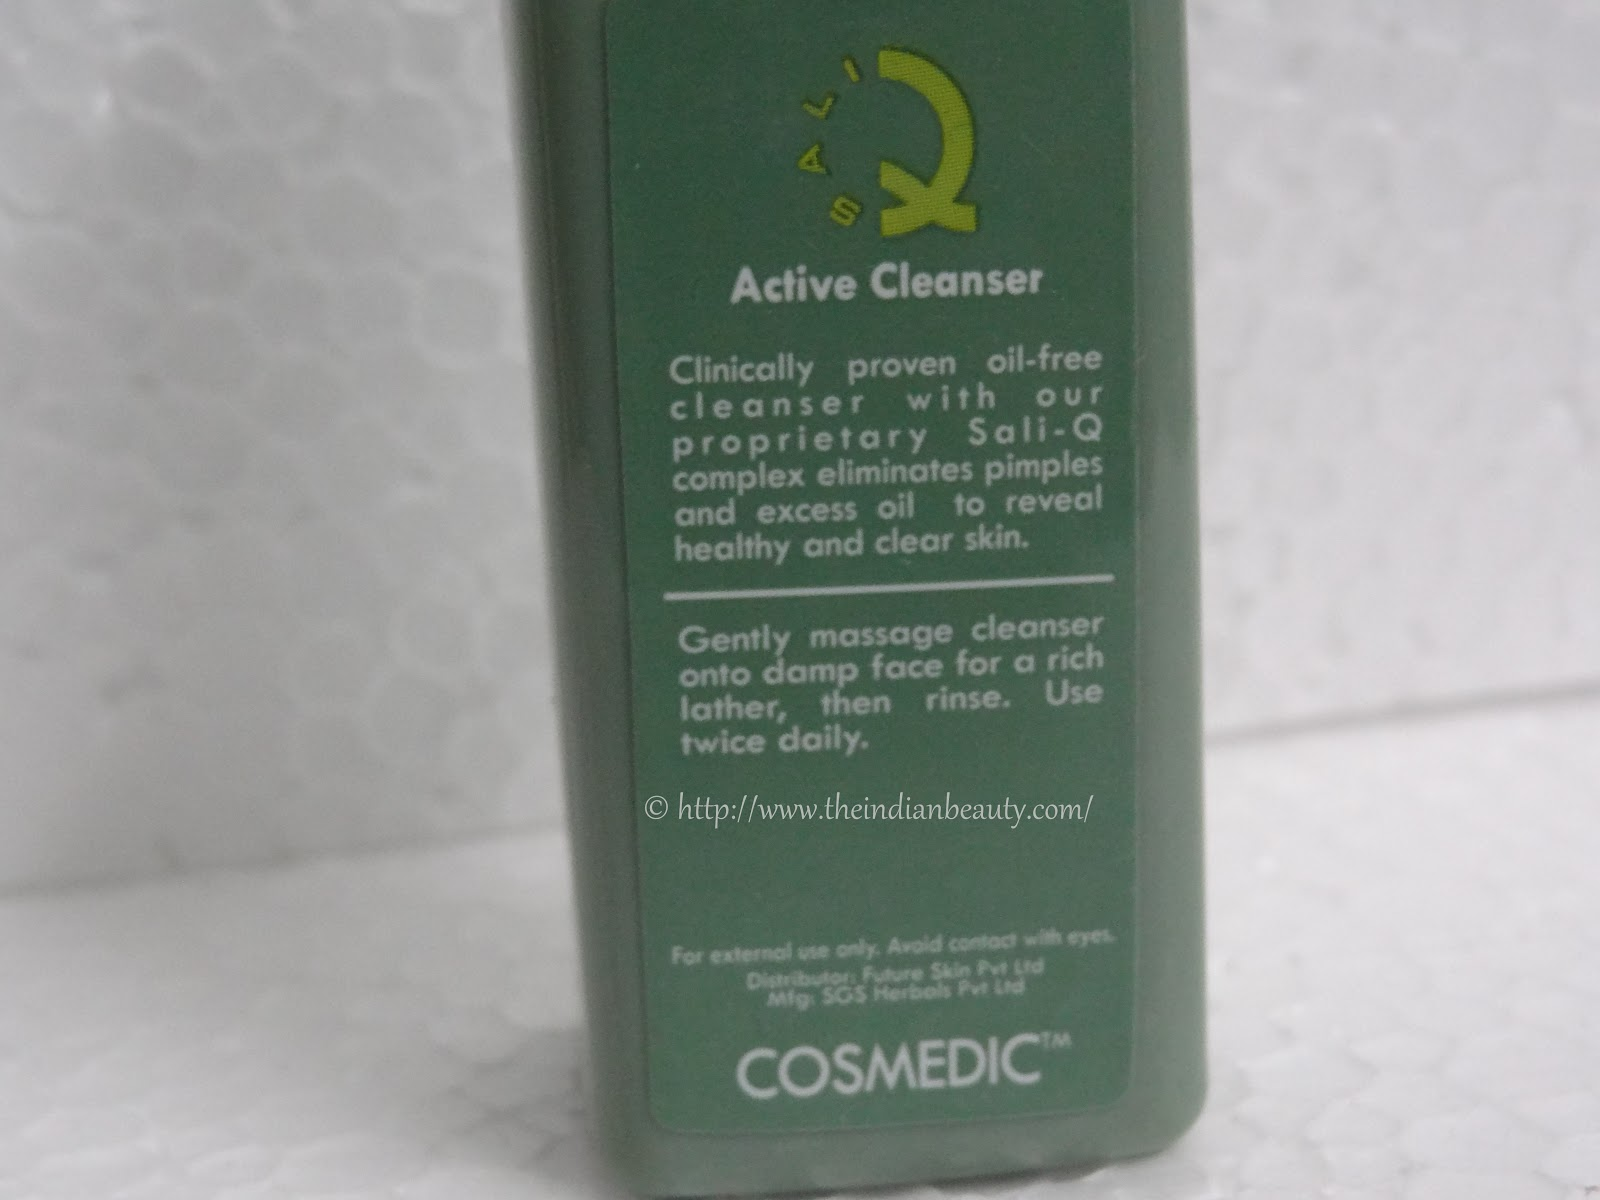 Cosmedic Sali-Q Active Cleanser: Review - The Indian Beauty Blog